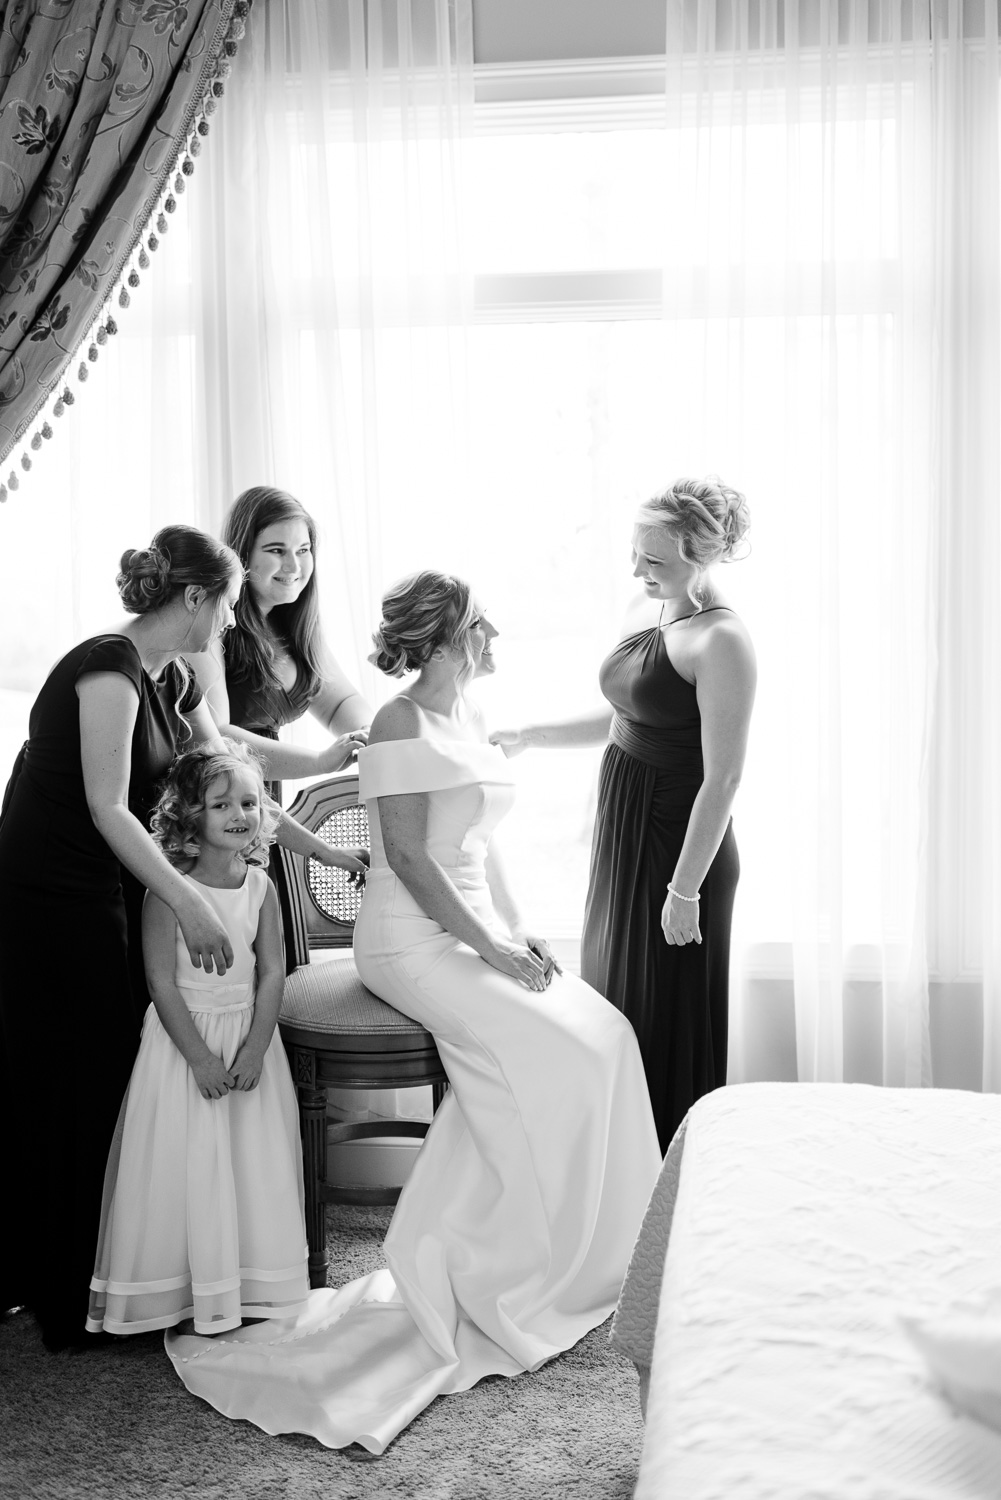 bride and her bride's maids around her in front of a large window.